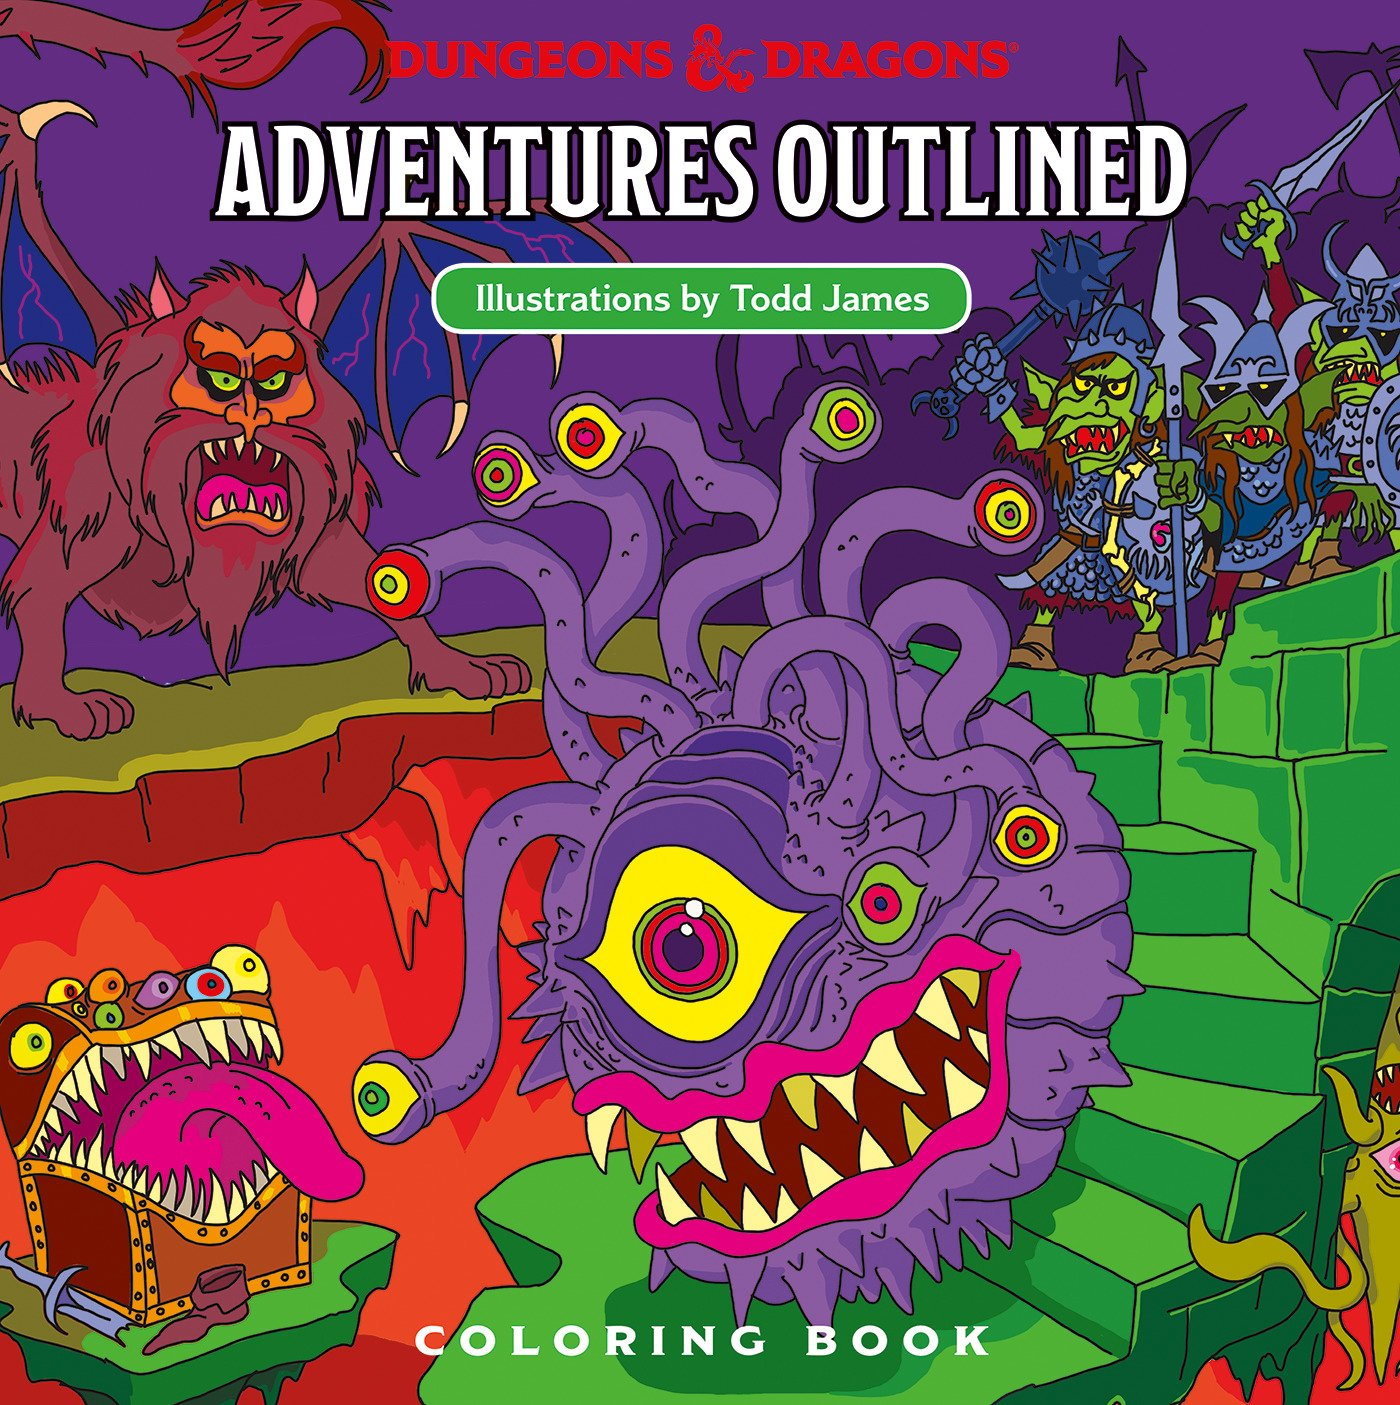 D&D colouring book